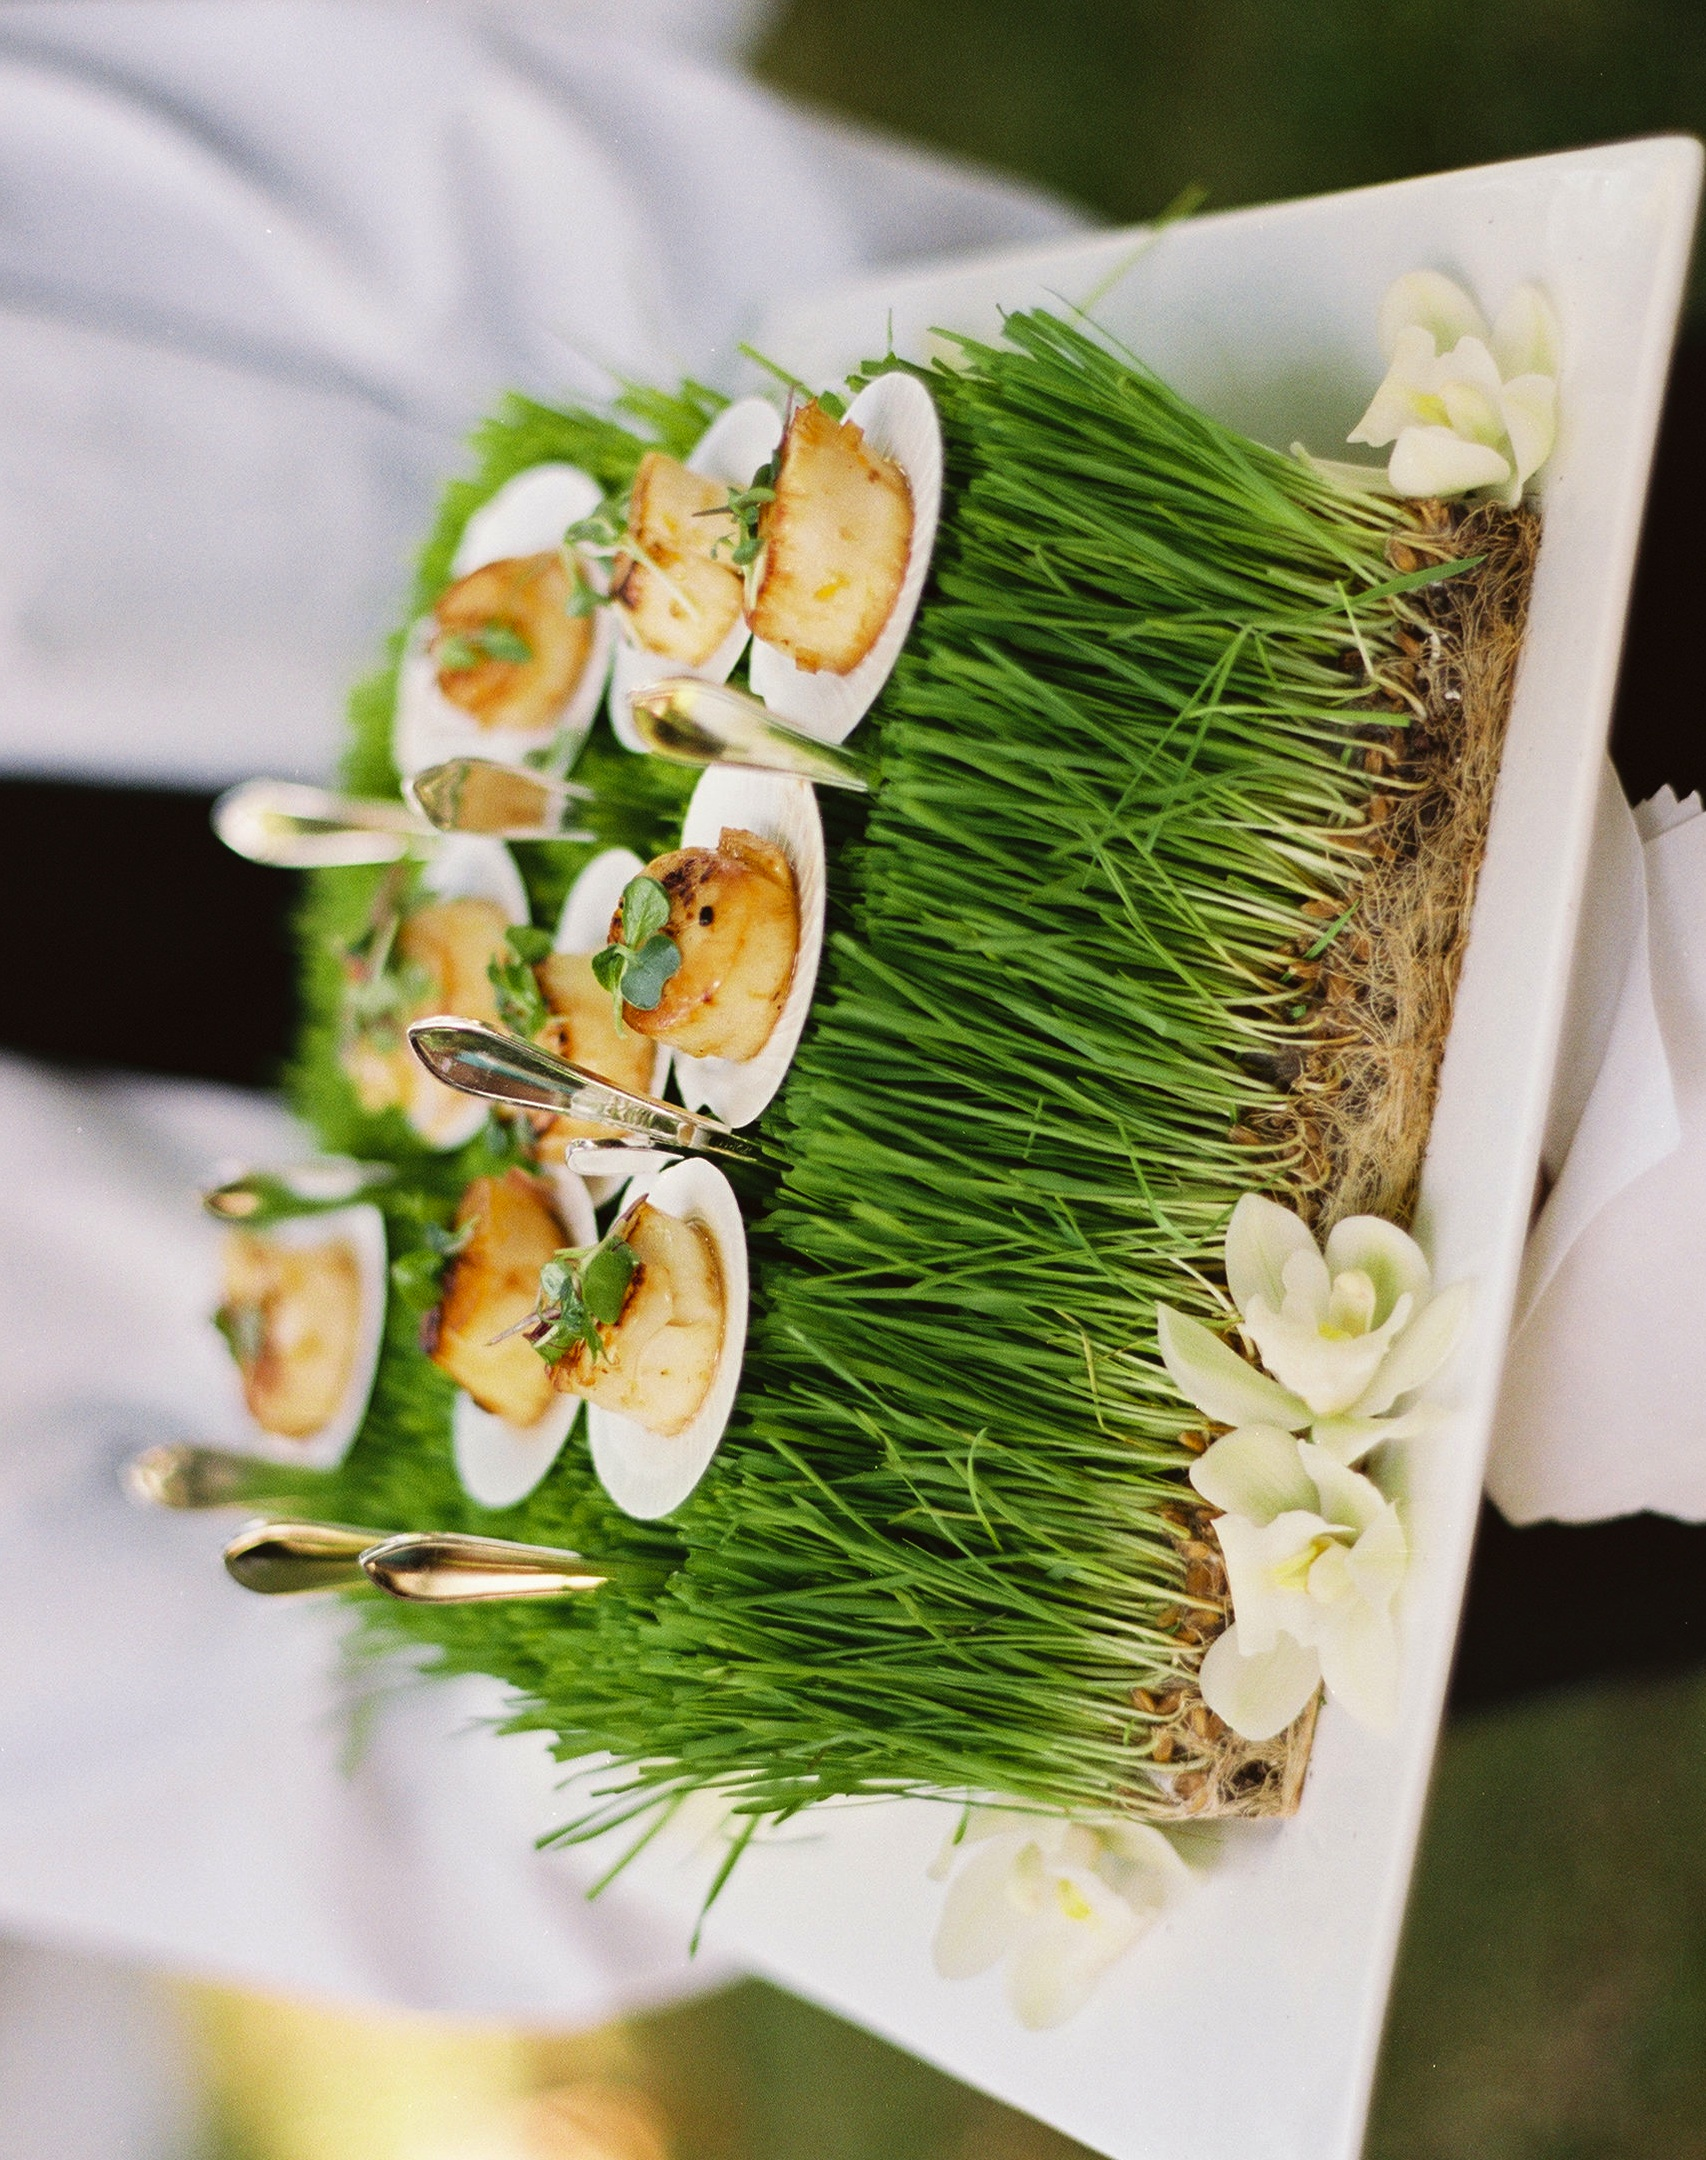 Wedding Catering - Wedding Food Designs - Inside Weddings